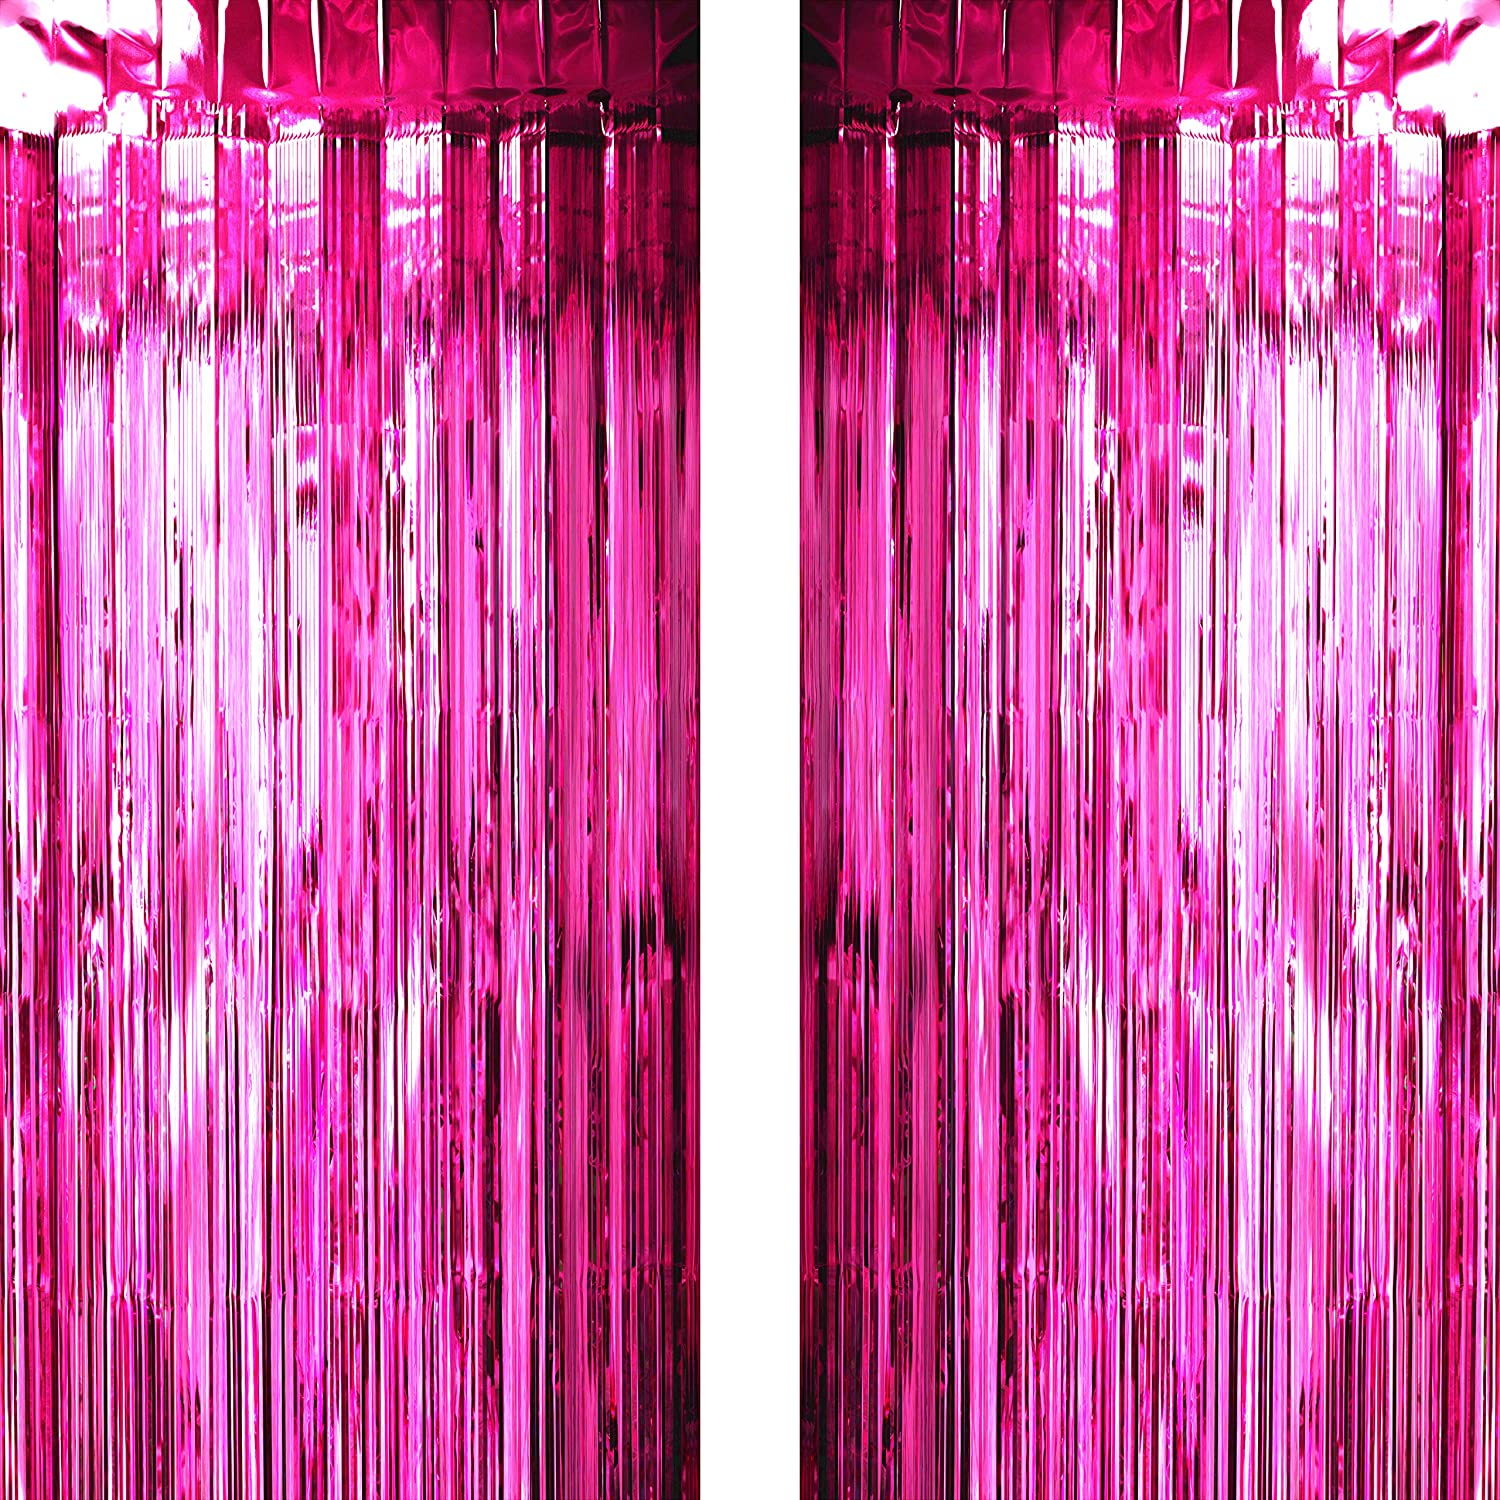 Hot Pink Tinsel Foil Fringe Curtains Decorations - Bachelorette Wedding Bridal Shower Girls Baby Shower Birthday Summer Party Photo Backdrops Props Decorations, 2pc